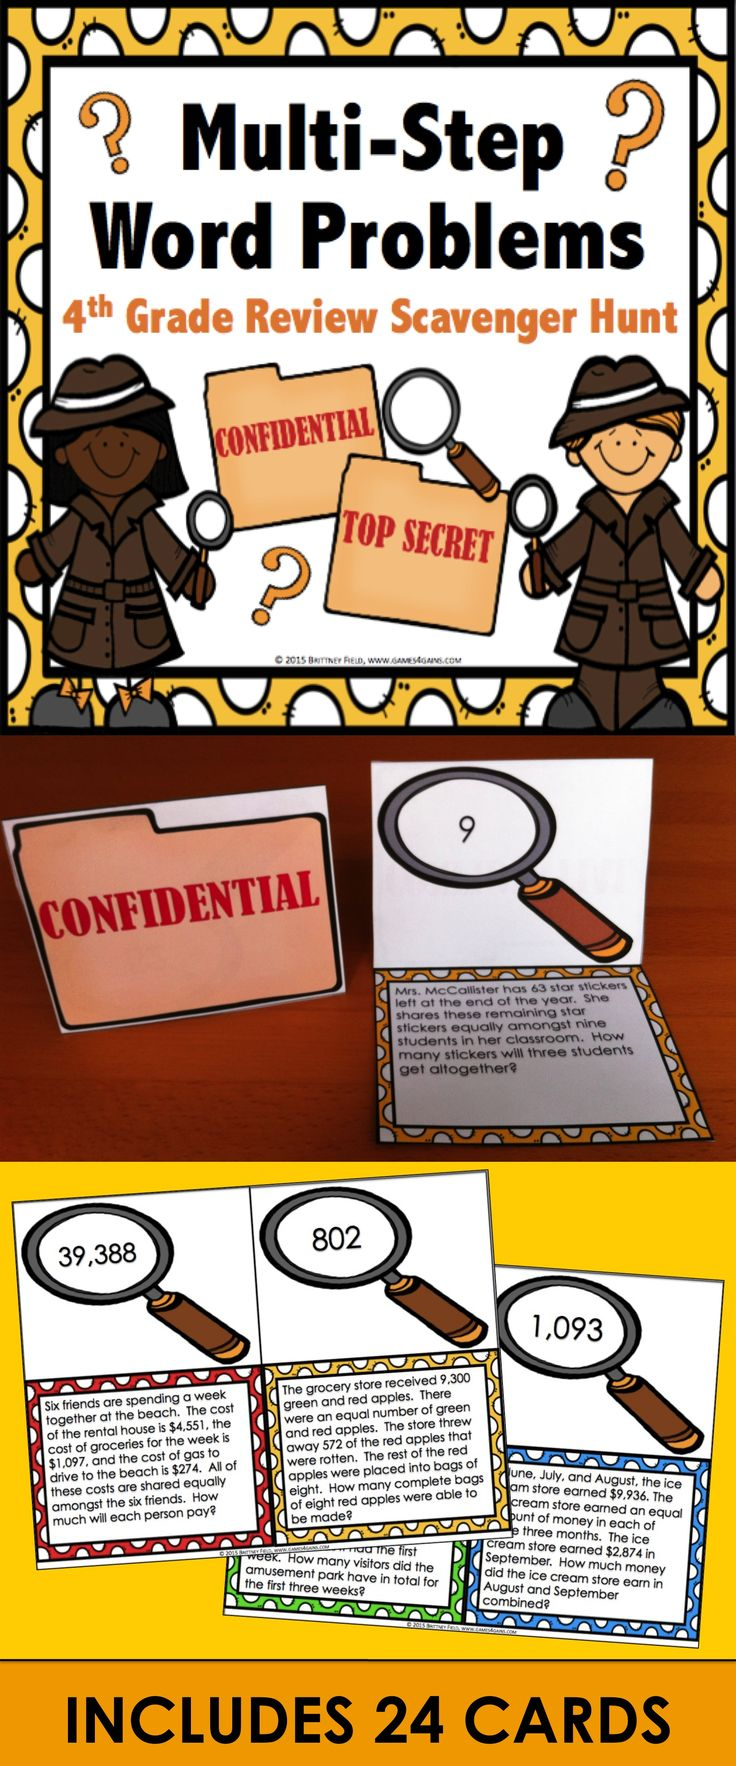 These scavenger hunt cards get students up and moving around the room as they practice solving multi-step word problems. Included are 24 challenging word problem cards that require students to use their addition, subtraction, multiplication, and division skills. This is a fun and exciting way to get in some additional math practice before the summer begins!